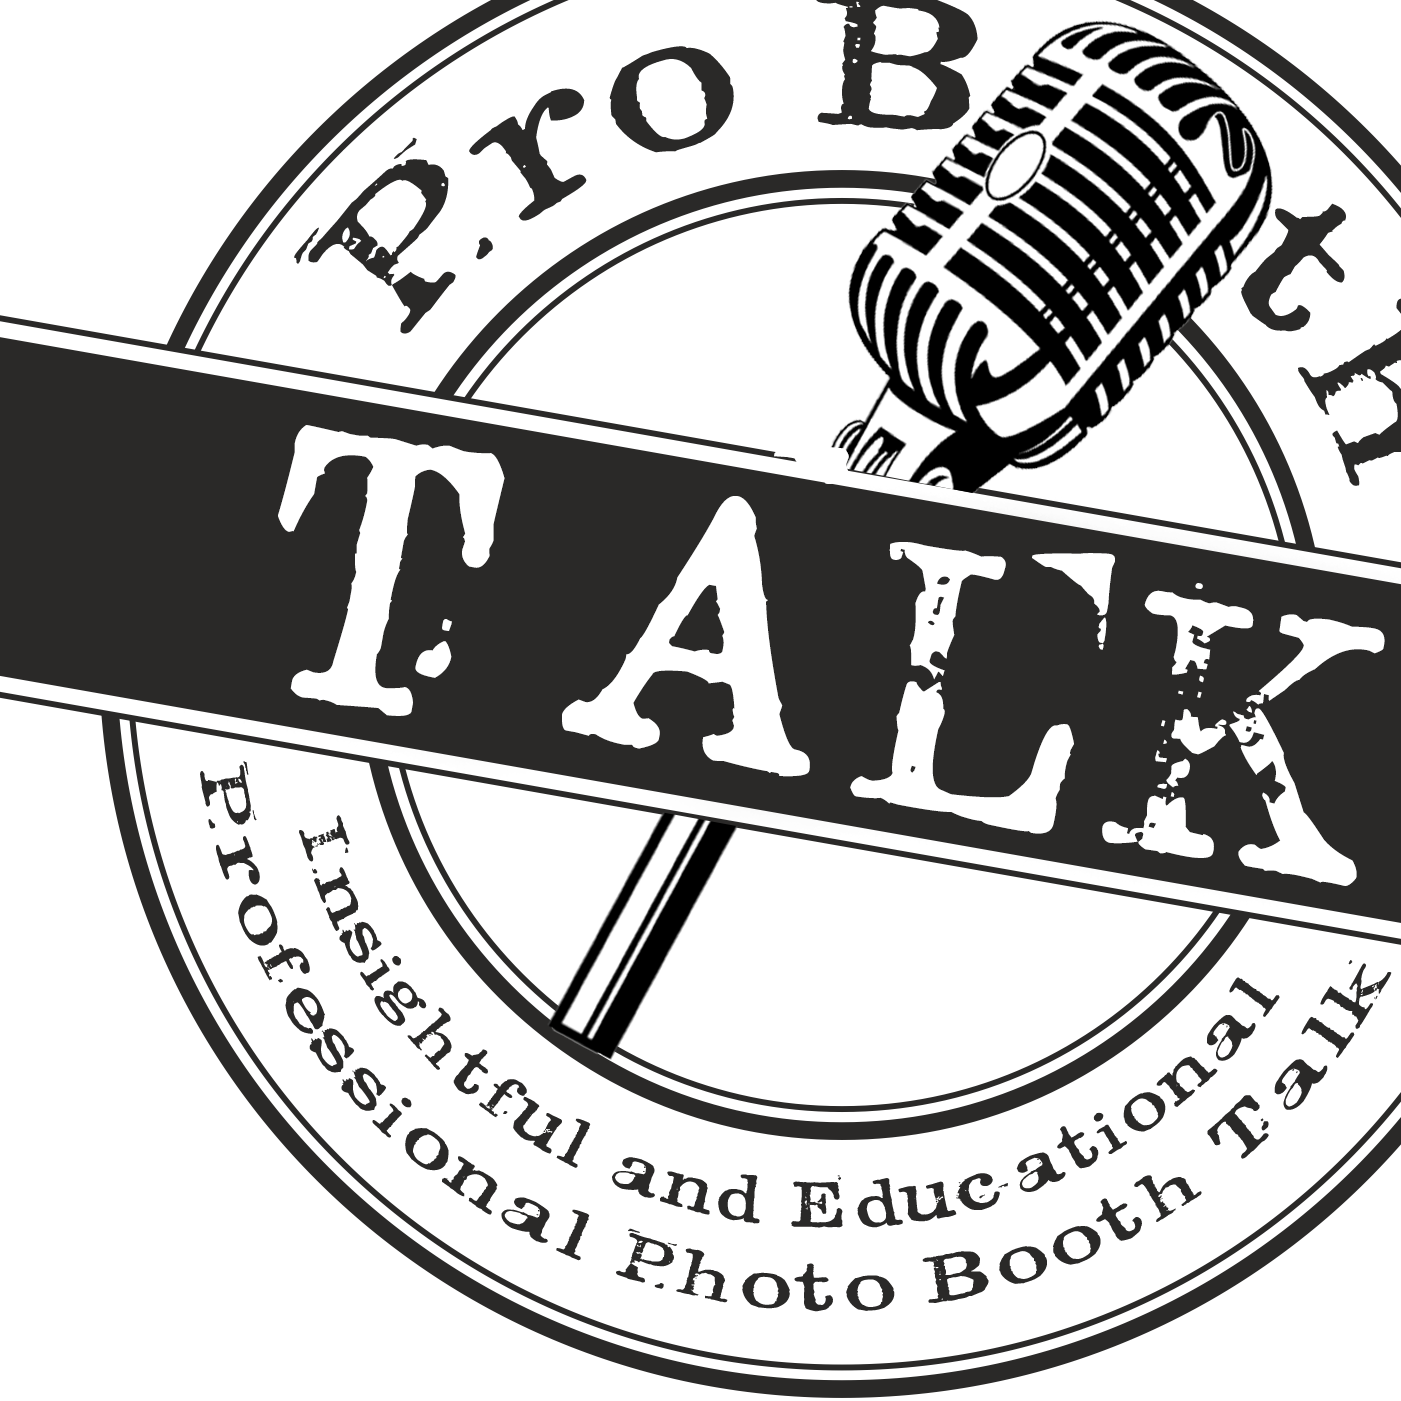 ProBoothTalk: The Photo Booth Podcast